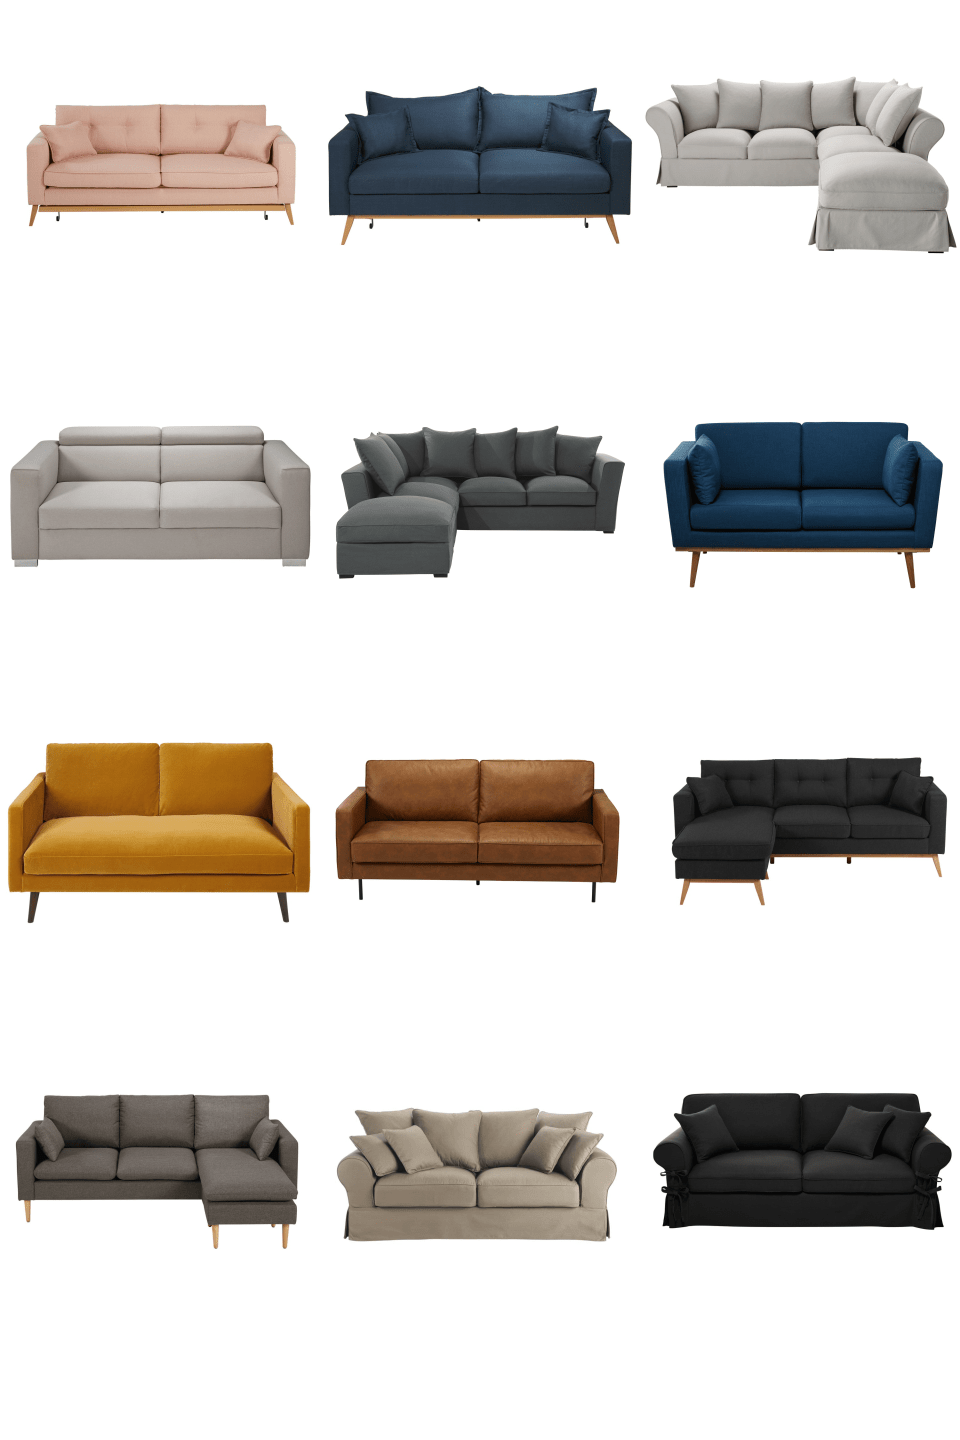 Maison Du Monde Schlafsofa Sofa So Good Maisons Du Monde S Living Room Ideas Inspiration